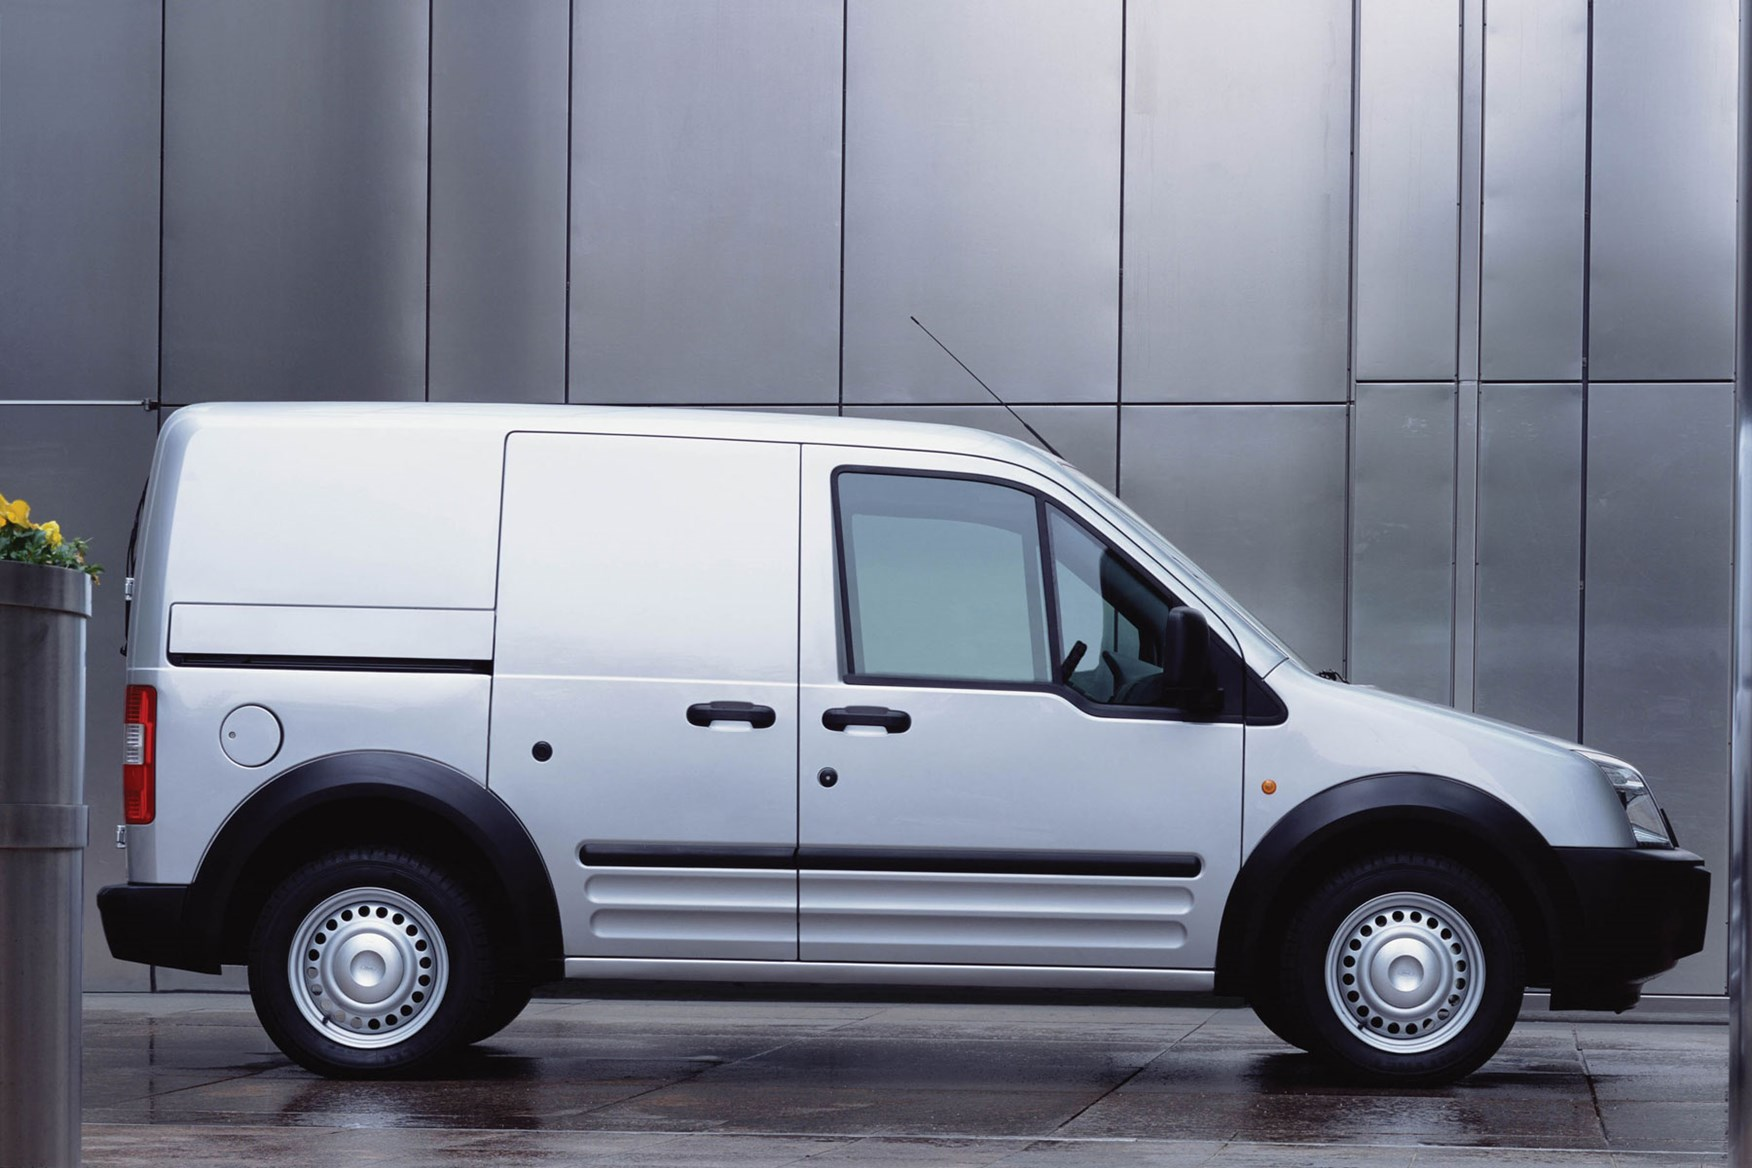 Ford Transit Connect (2002-2013) side view